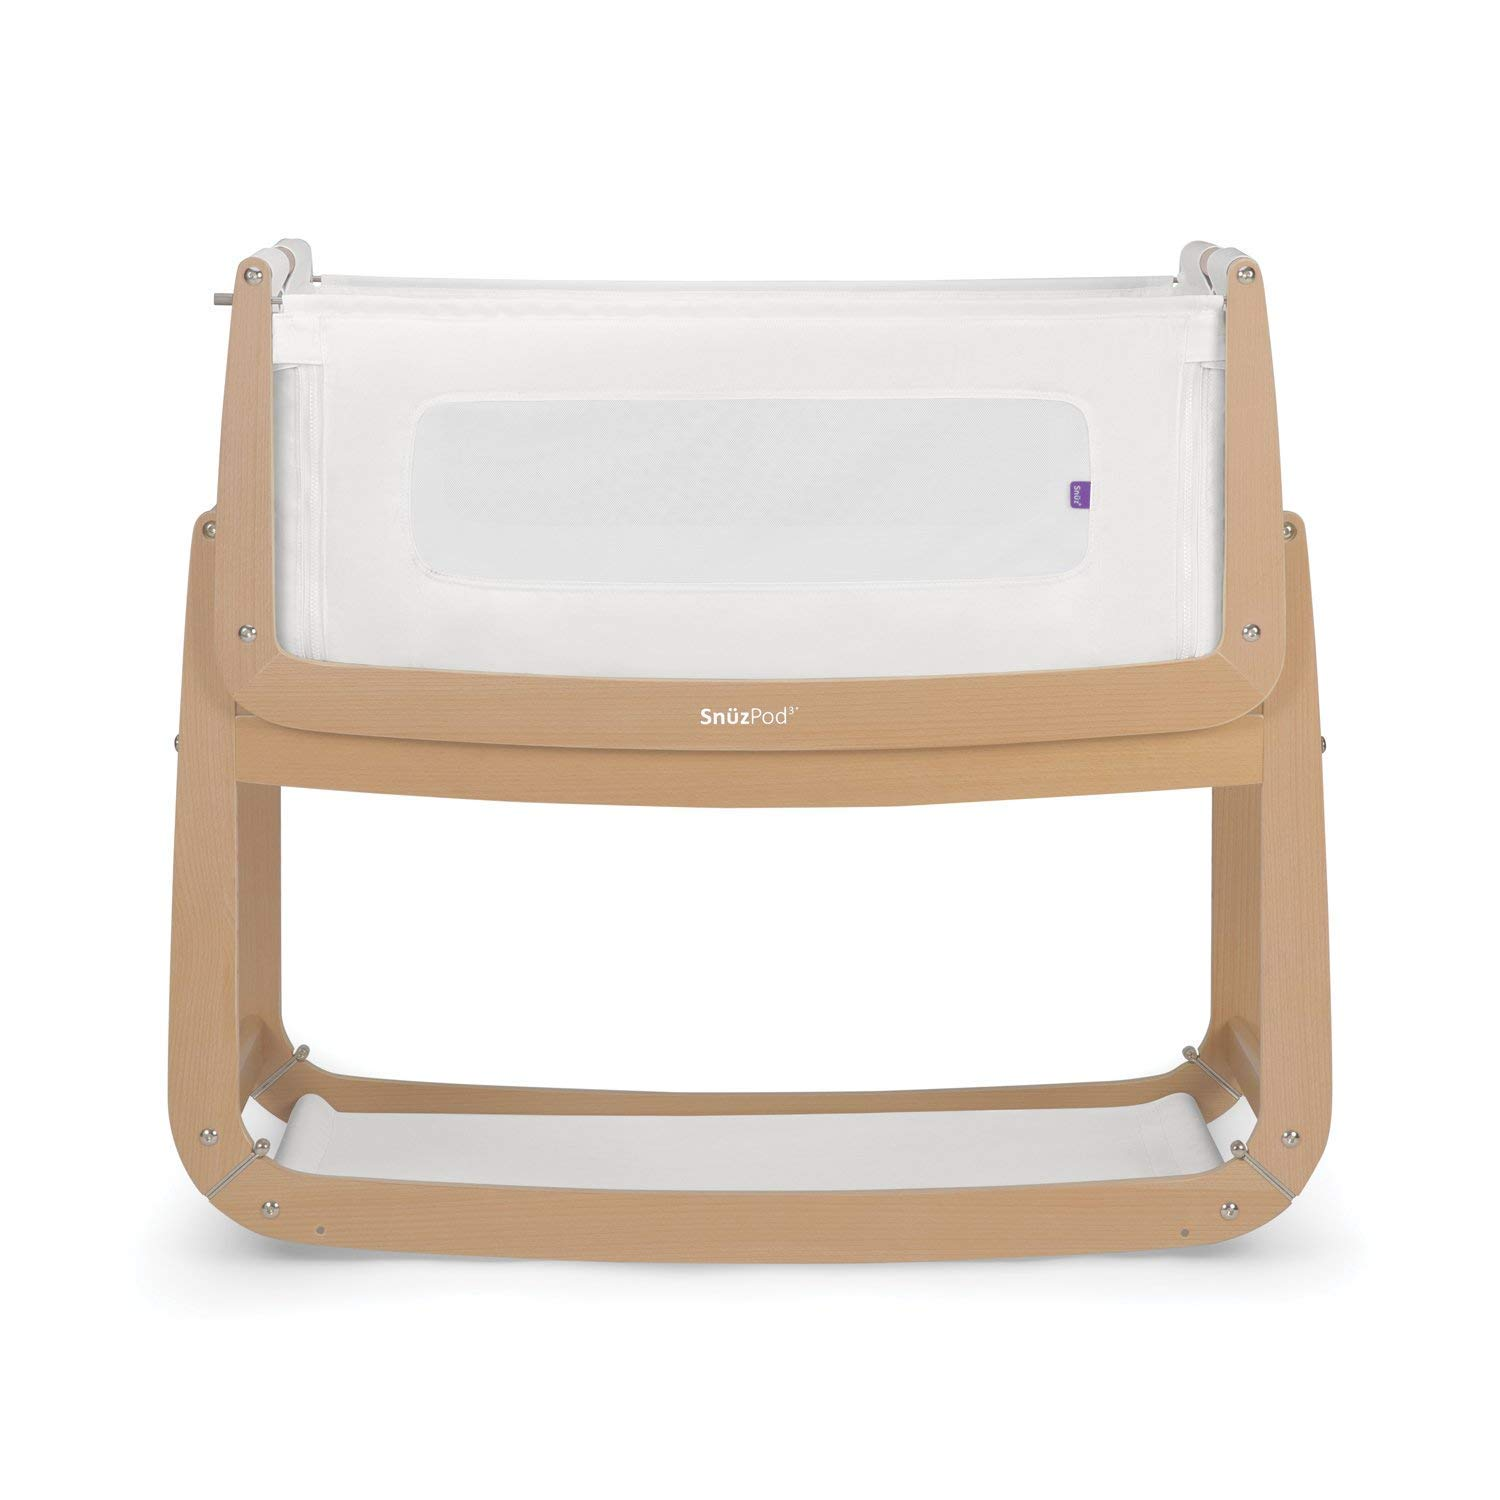 SnuzPod 3 Bedside Crib - Natural by Snuz